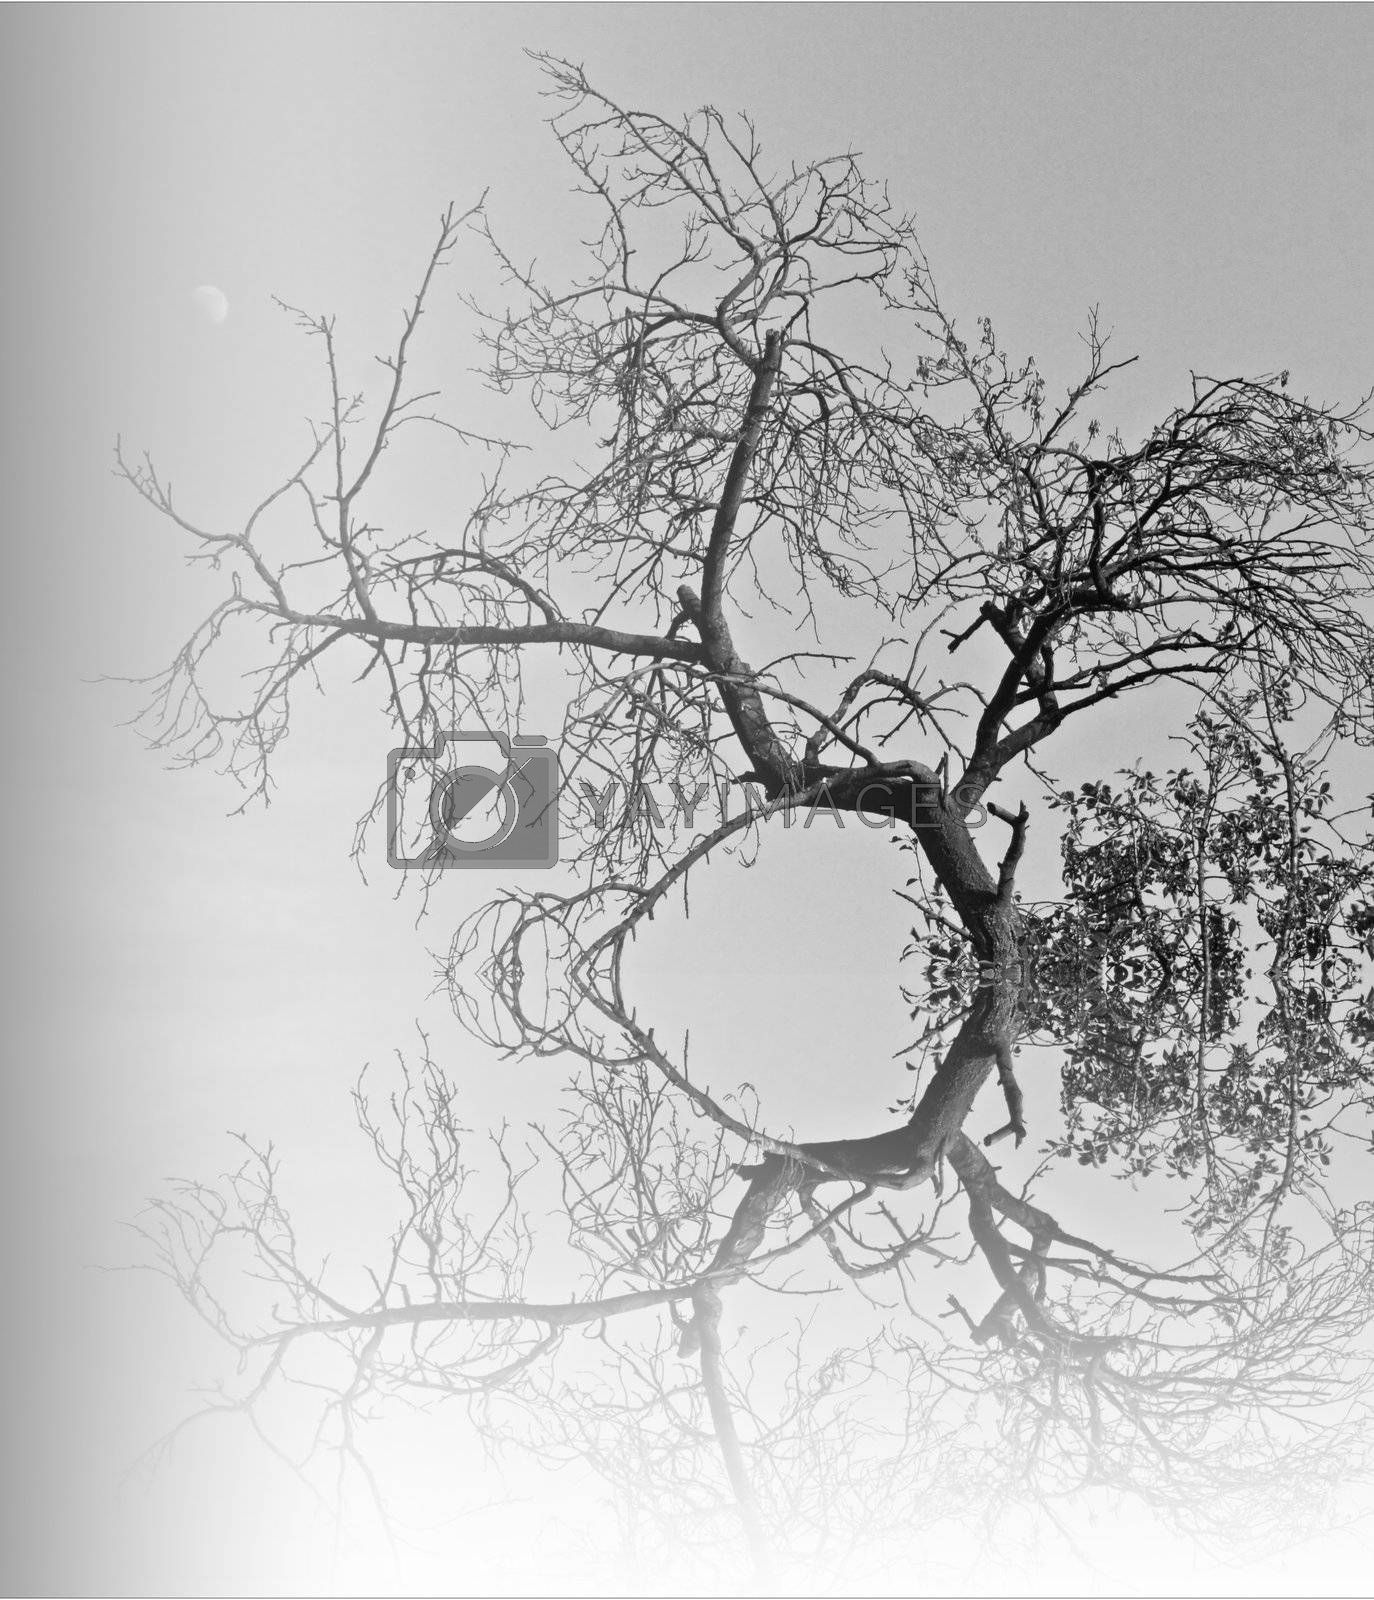 Abstract branch reflection with the moon in the background. Monochrome fine art.